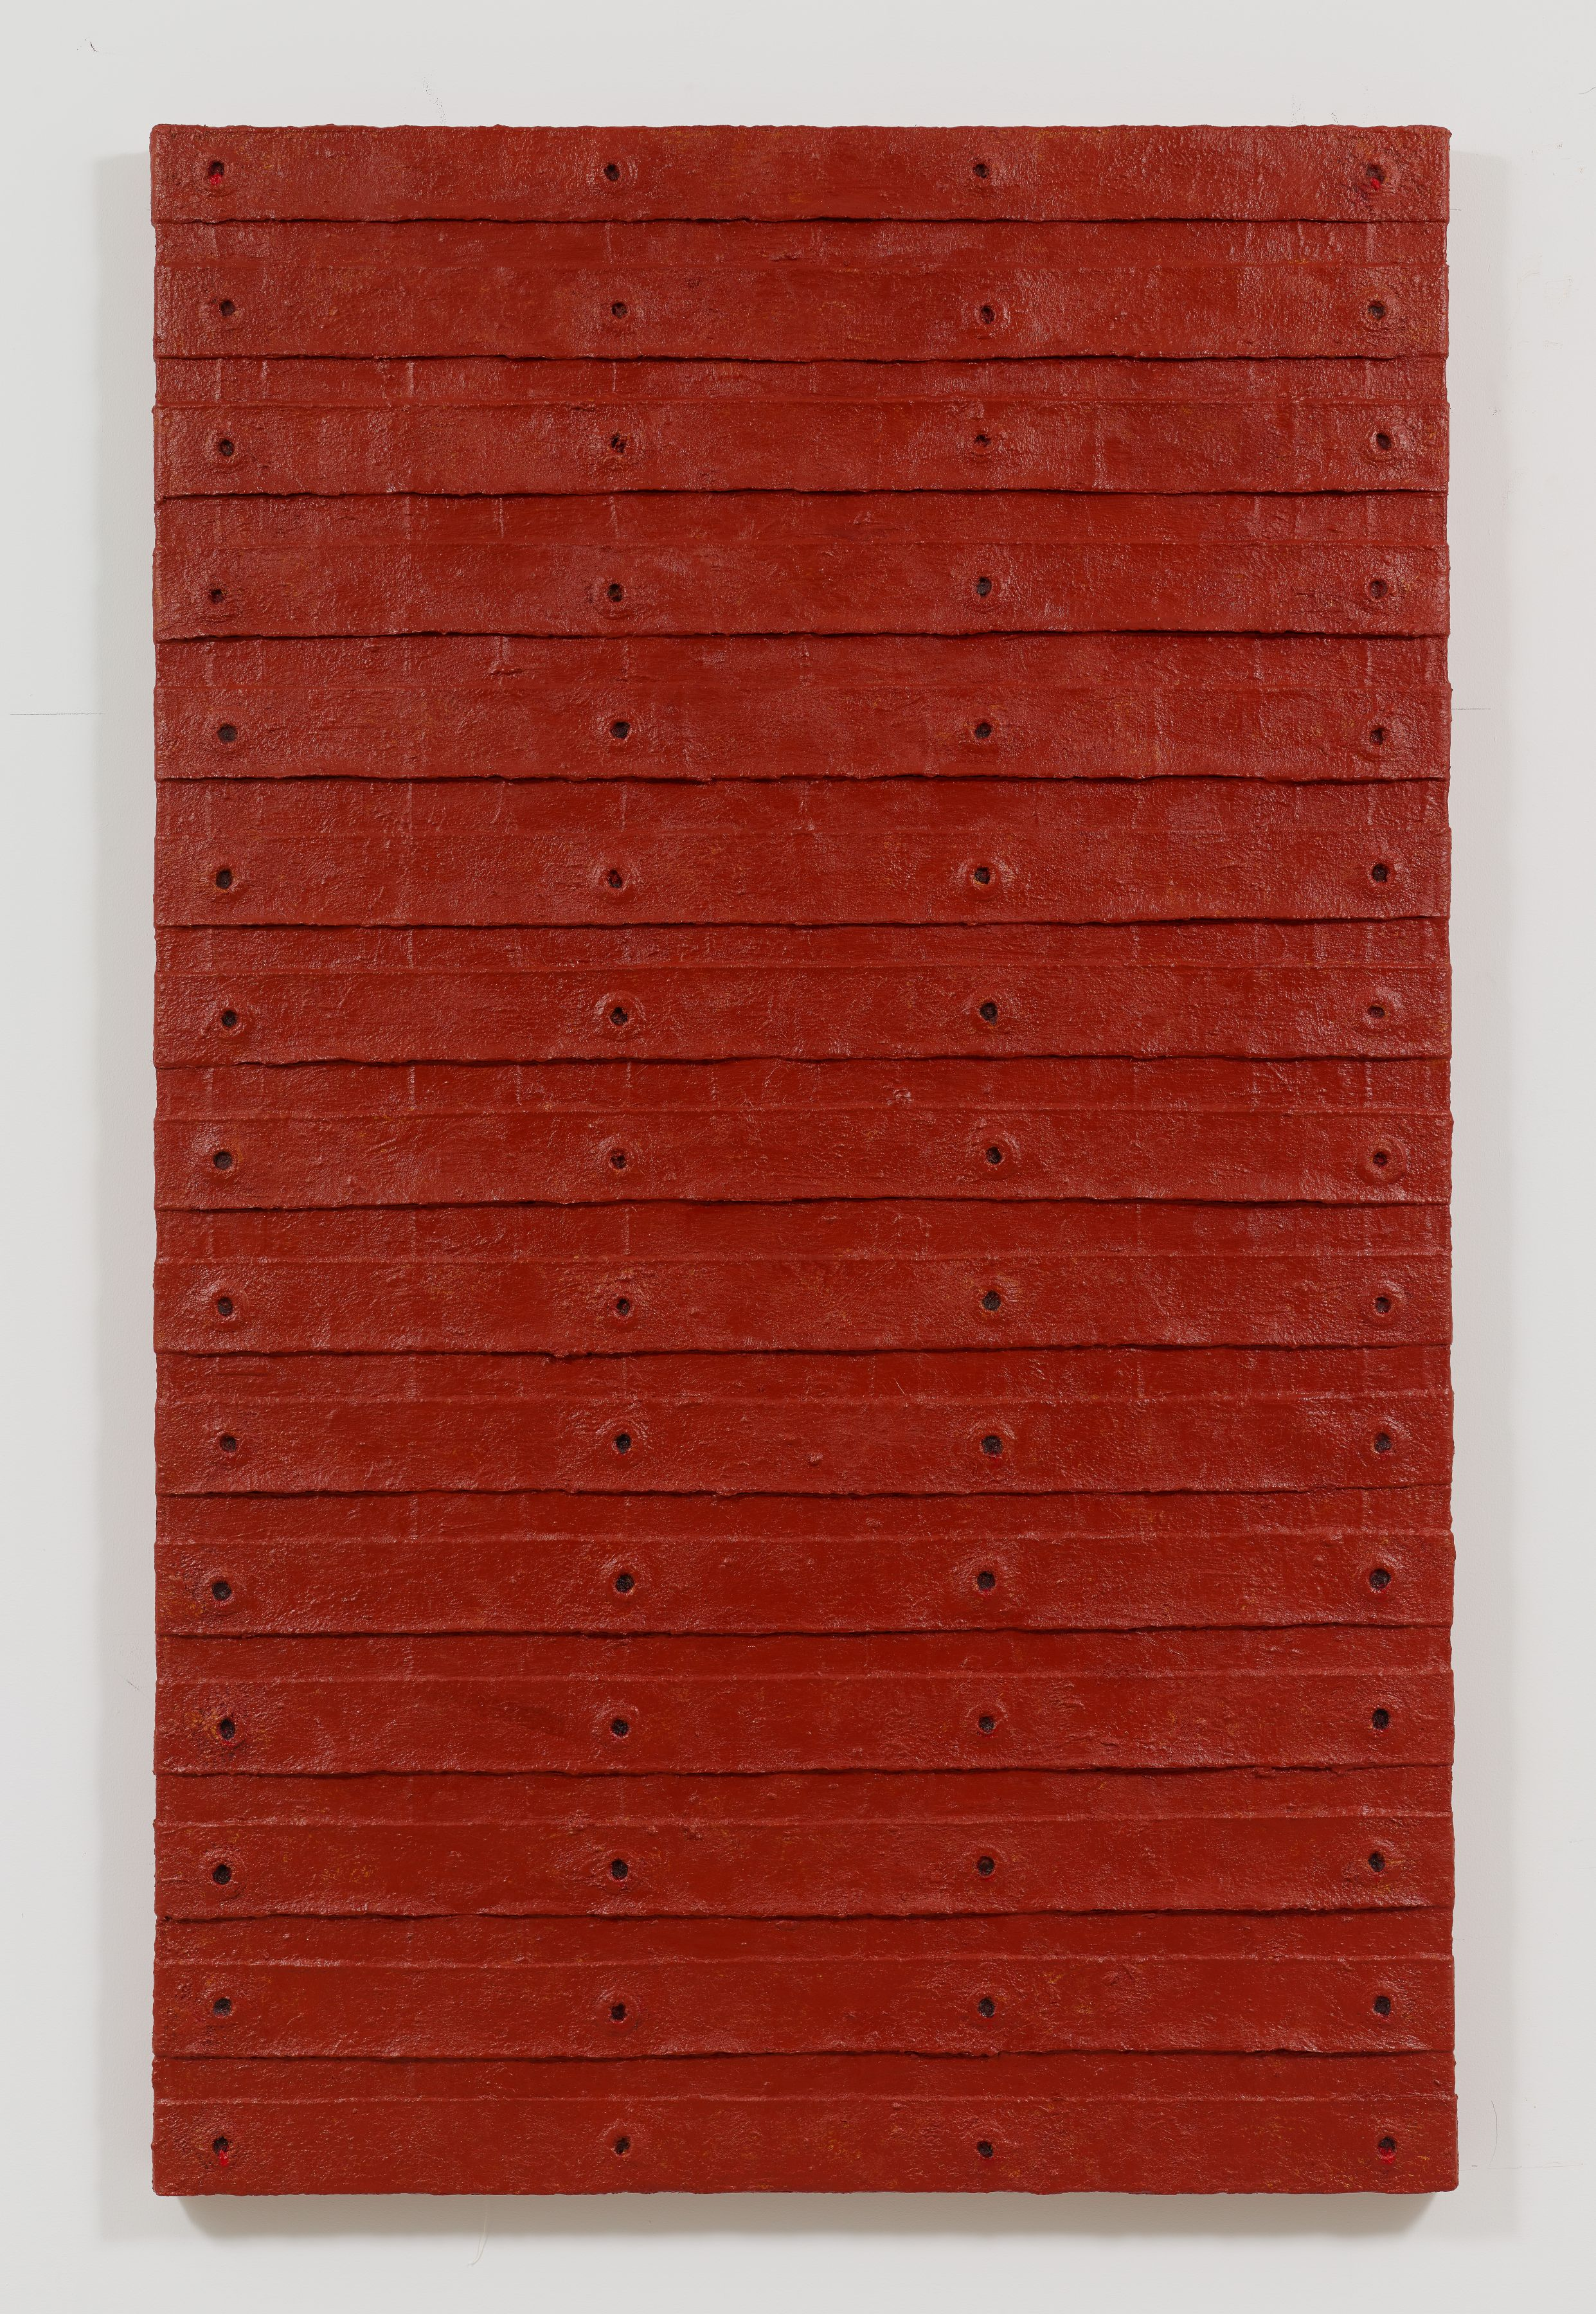 Harmony Hammond, Red Stack, 2015